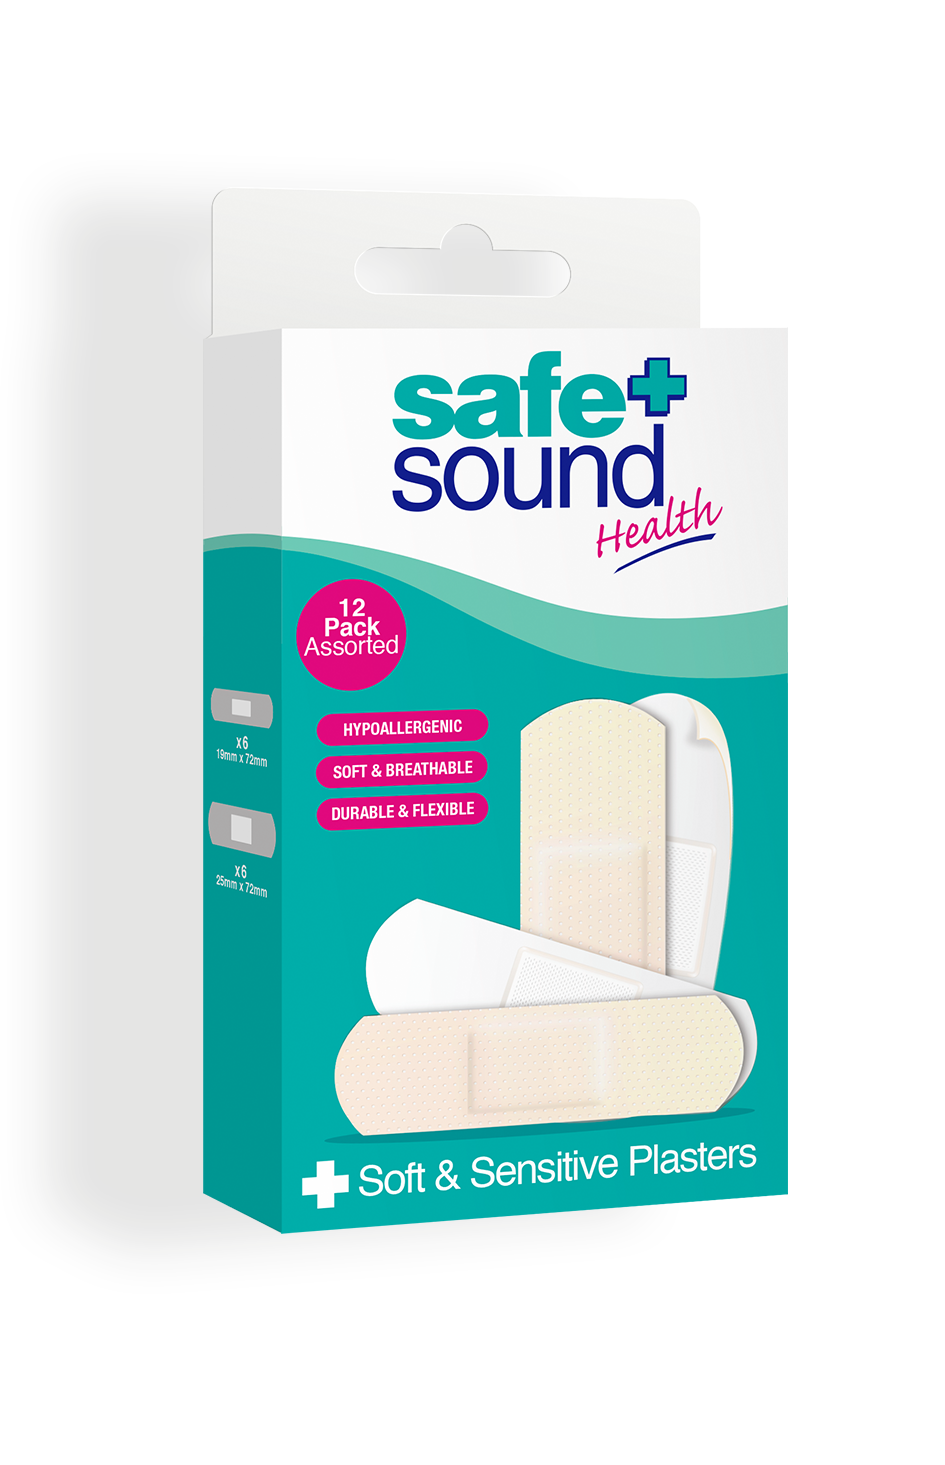 Safe and Sound Health pack of 12 Soft and Sensitive Plasters for sensitive skin